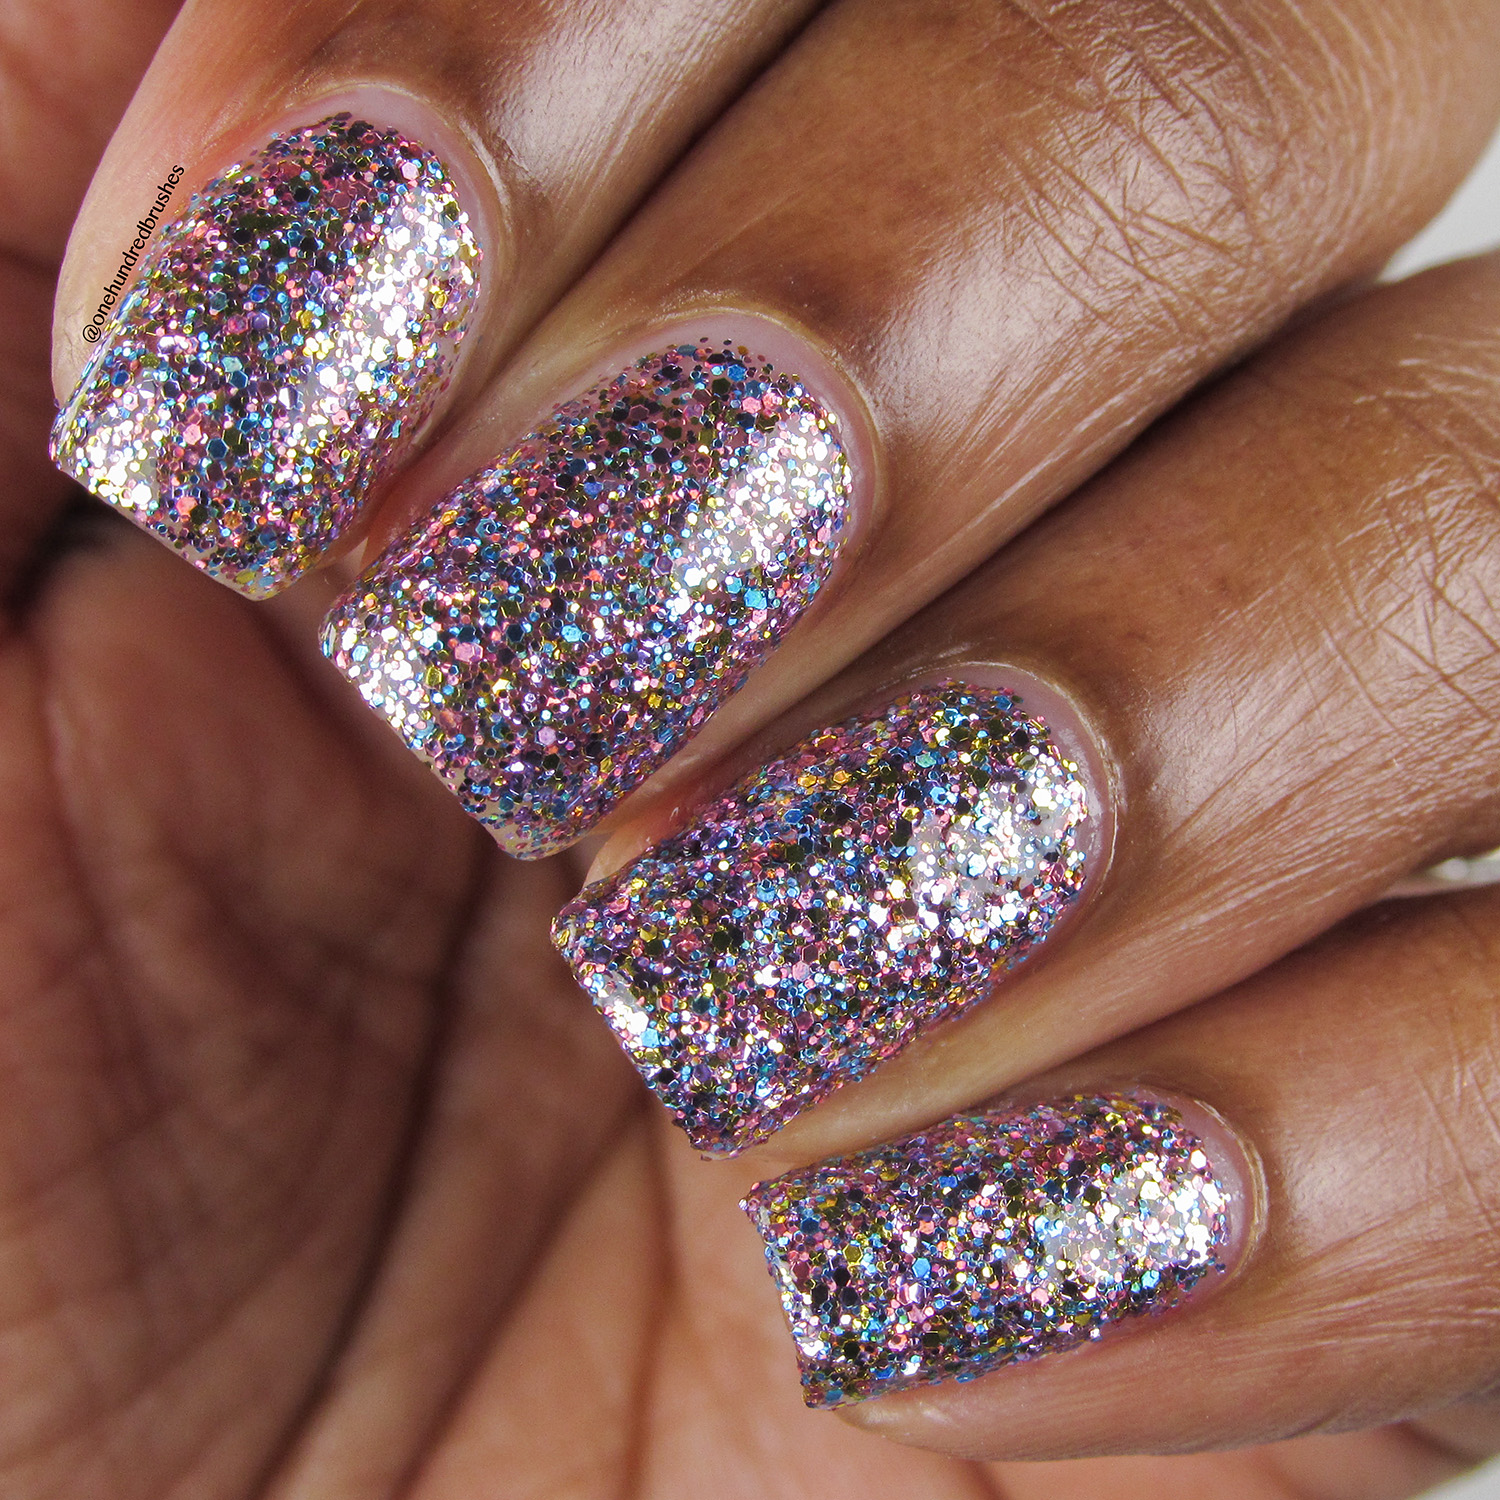 Glitter Godmother - Closuep - Painted Polish - The Indie Shop Anaheim 2018